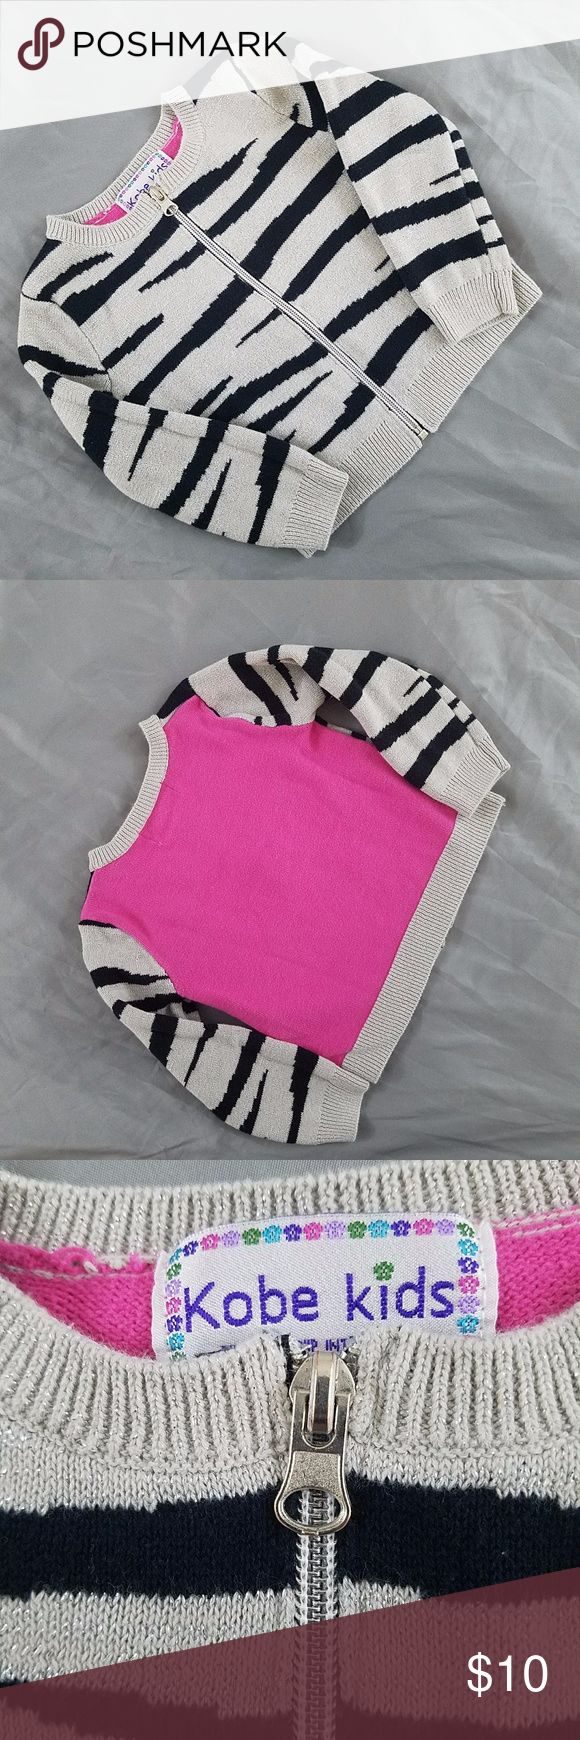 Kobe Kids Zebra Print zip up sweater. EUC no rips or stains. This is a super cute sweater its warm and has a nice feel.  From a smoke and pet free home Kobe Kids Shirts & Tops Sweaters